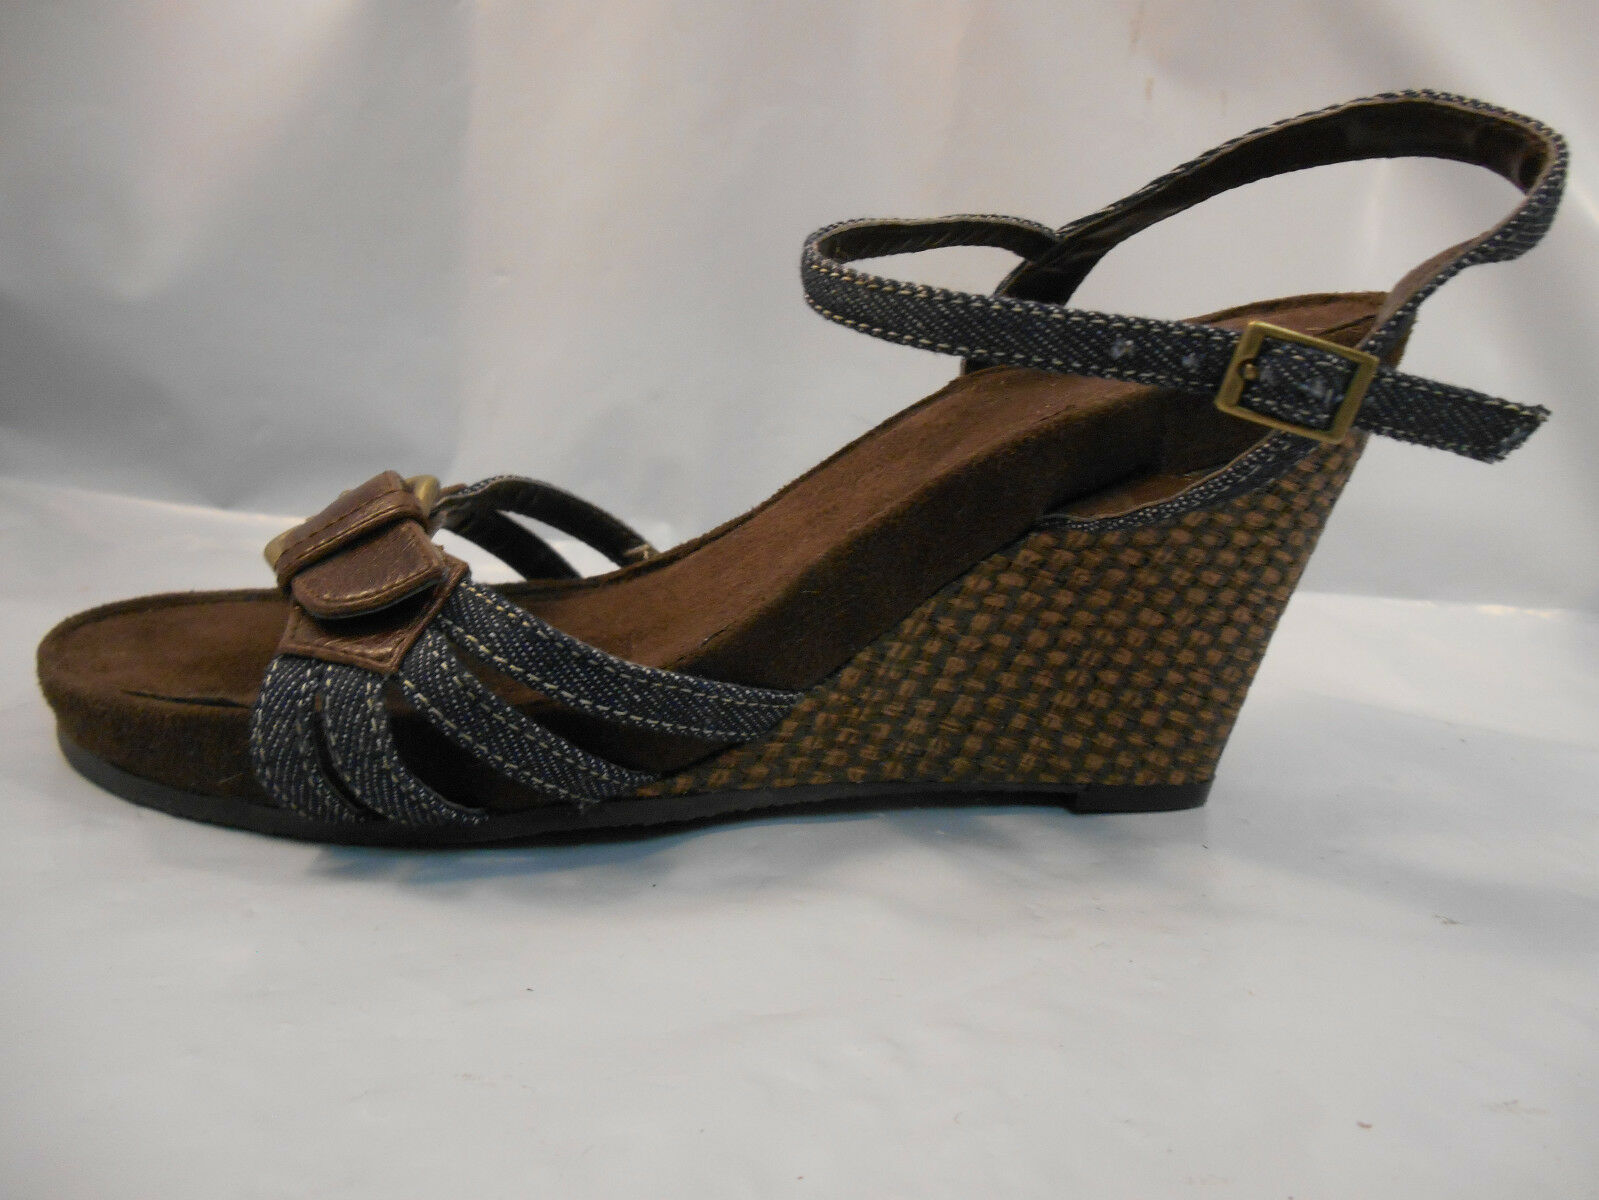 74ea63531aa Bass Brown and Blue Denim Wedge Heels Sandals Women s Size 7 M - aijaz.info